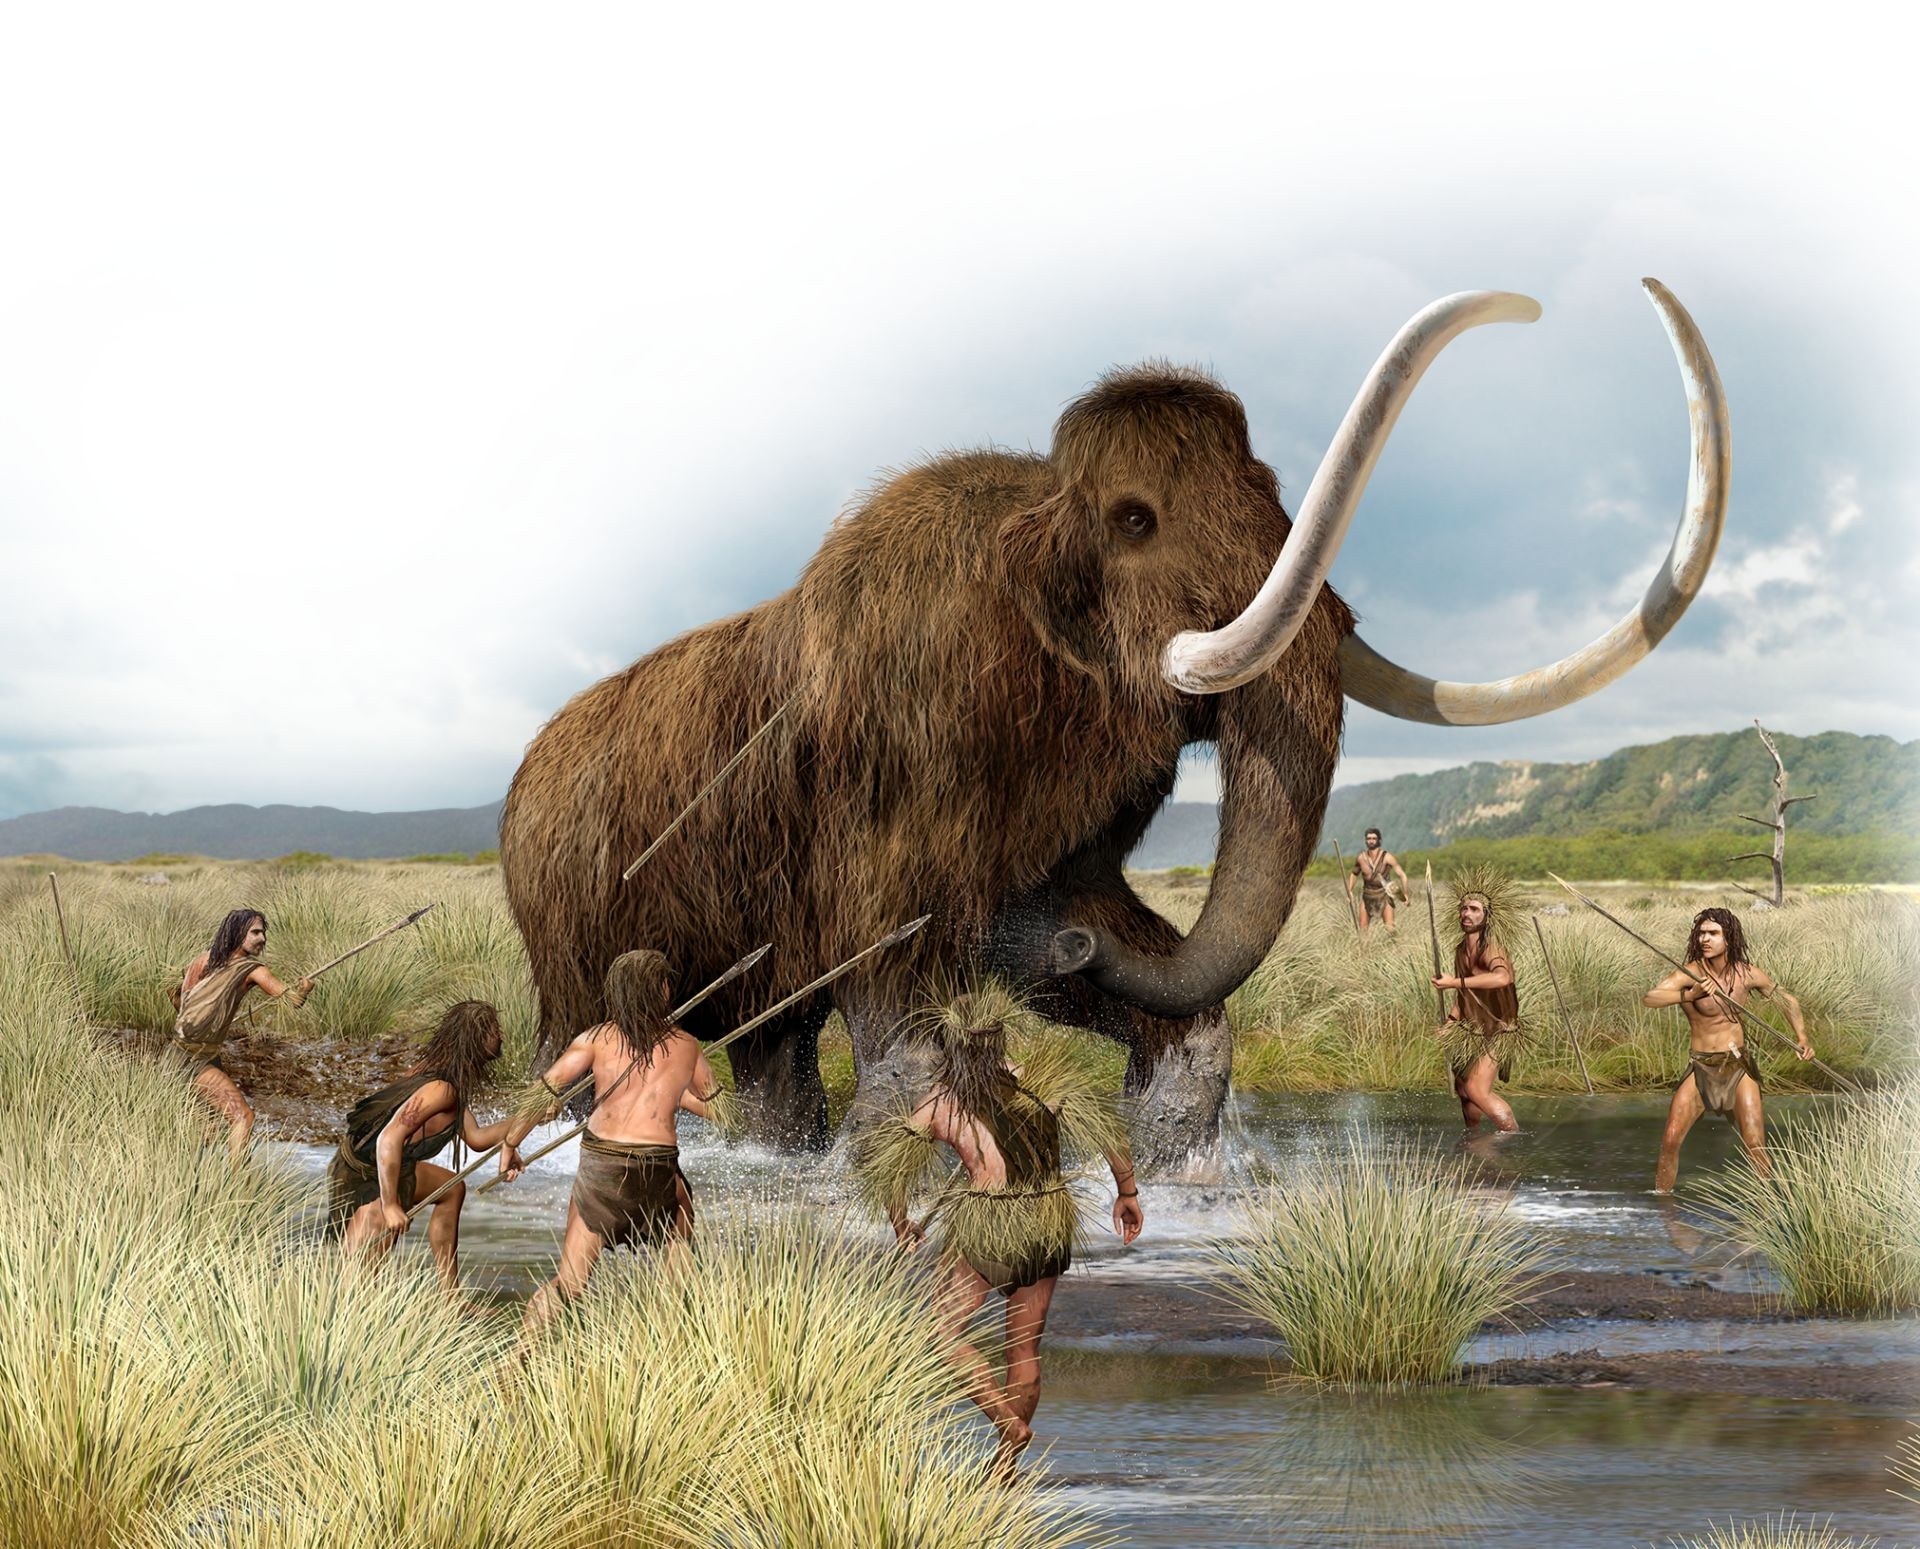 Early Human Hunting | Humans Hunting Mammoths | DK Find Out